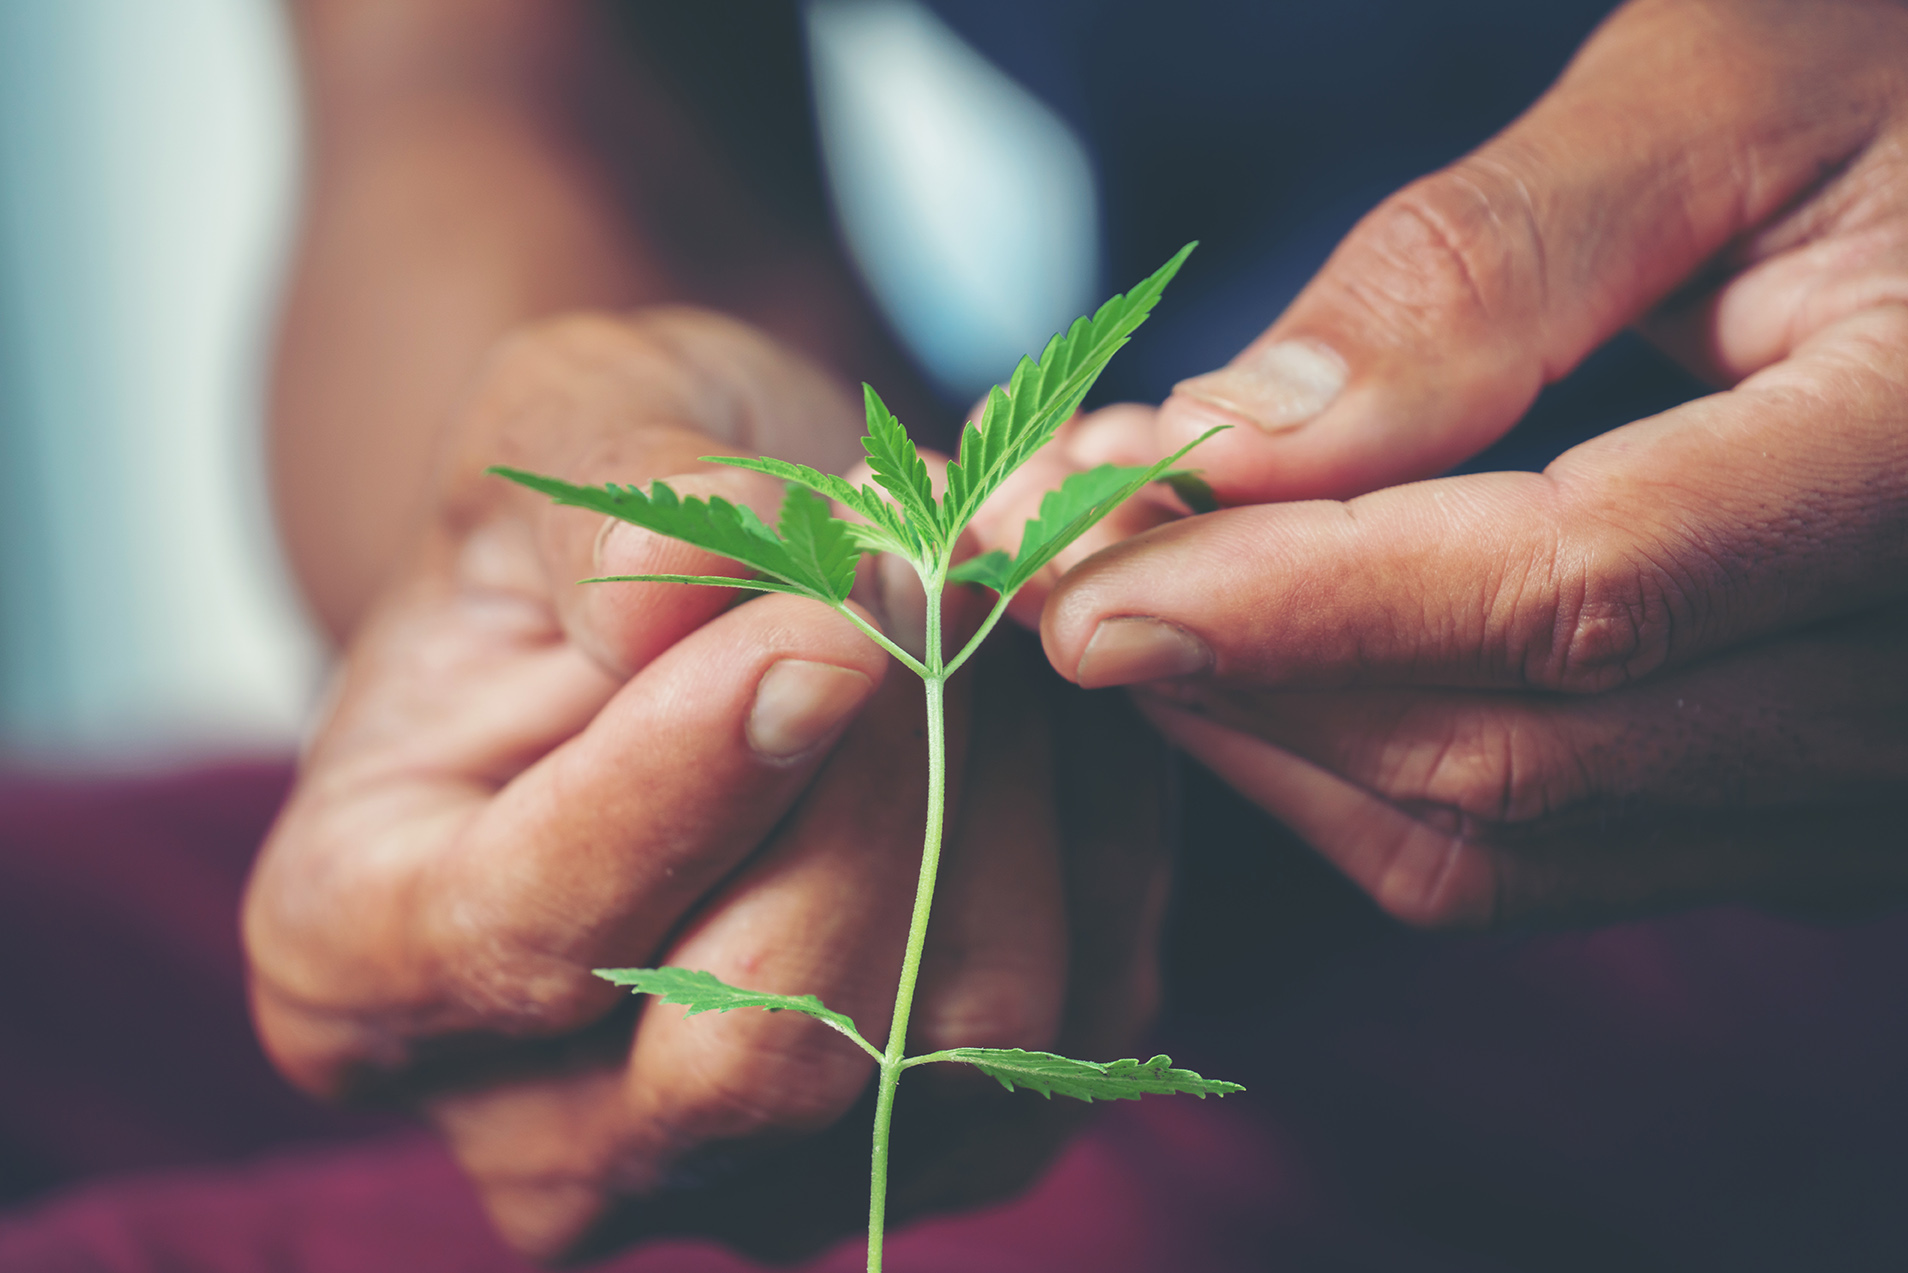 A person delicately checks the leaves of a small cannabis plant.